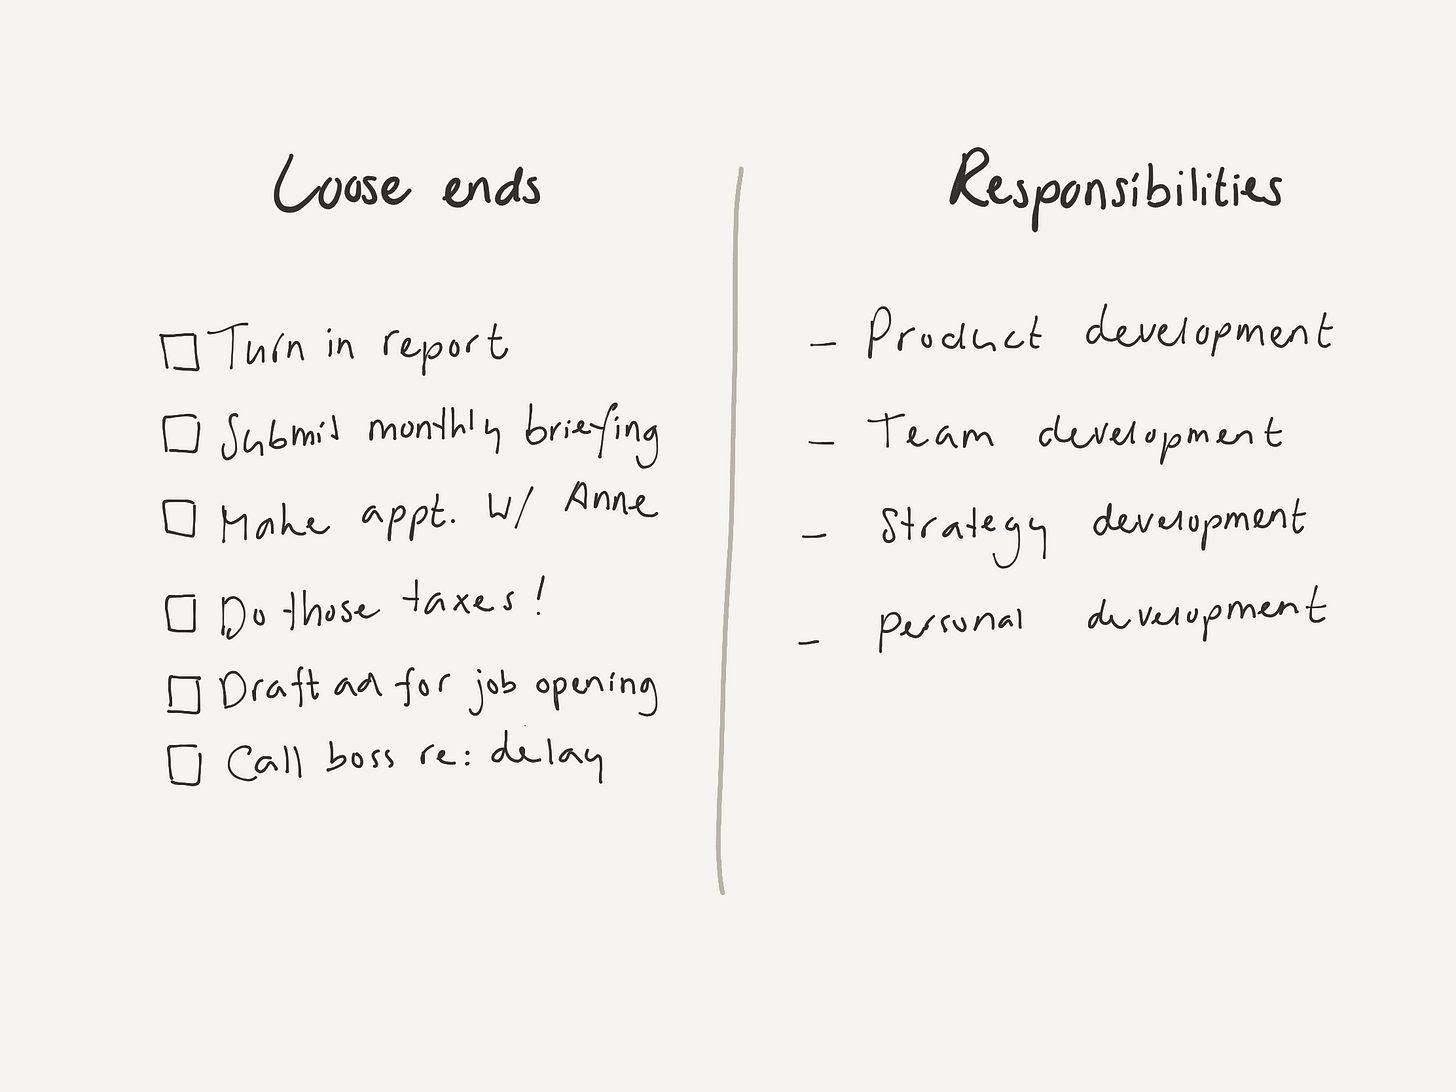 Urgent tasks on the left (sorry for making you think about taxes!), responsibilities on the right. Turns out it doesn't look that bad.